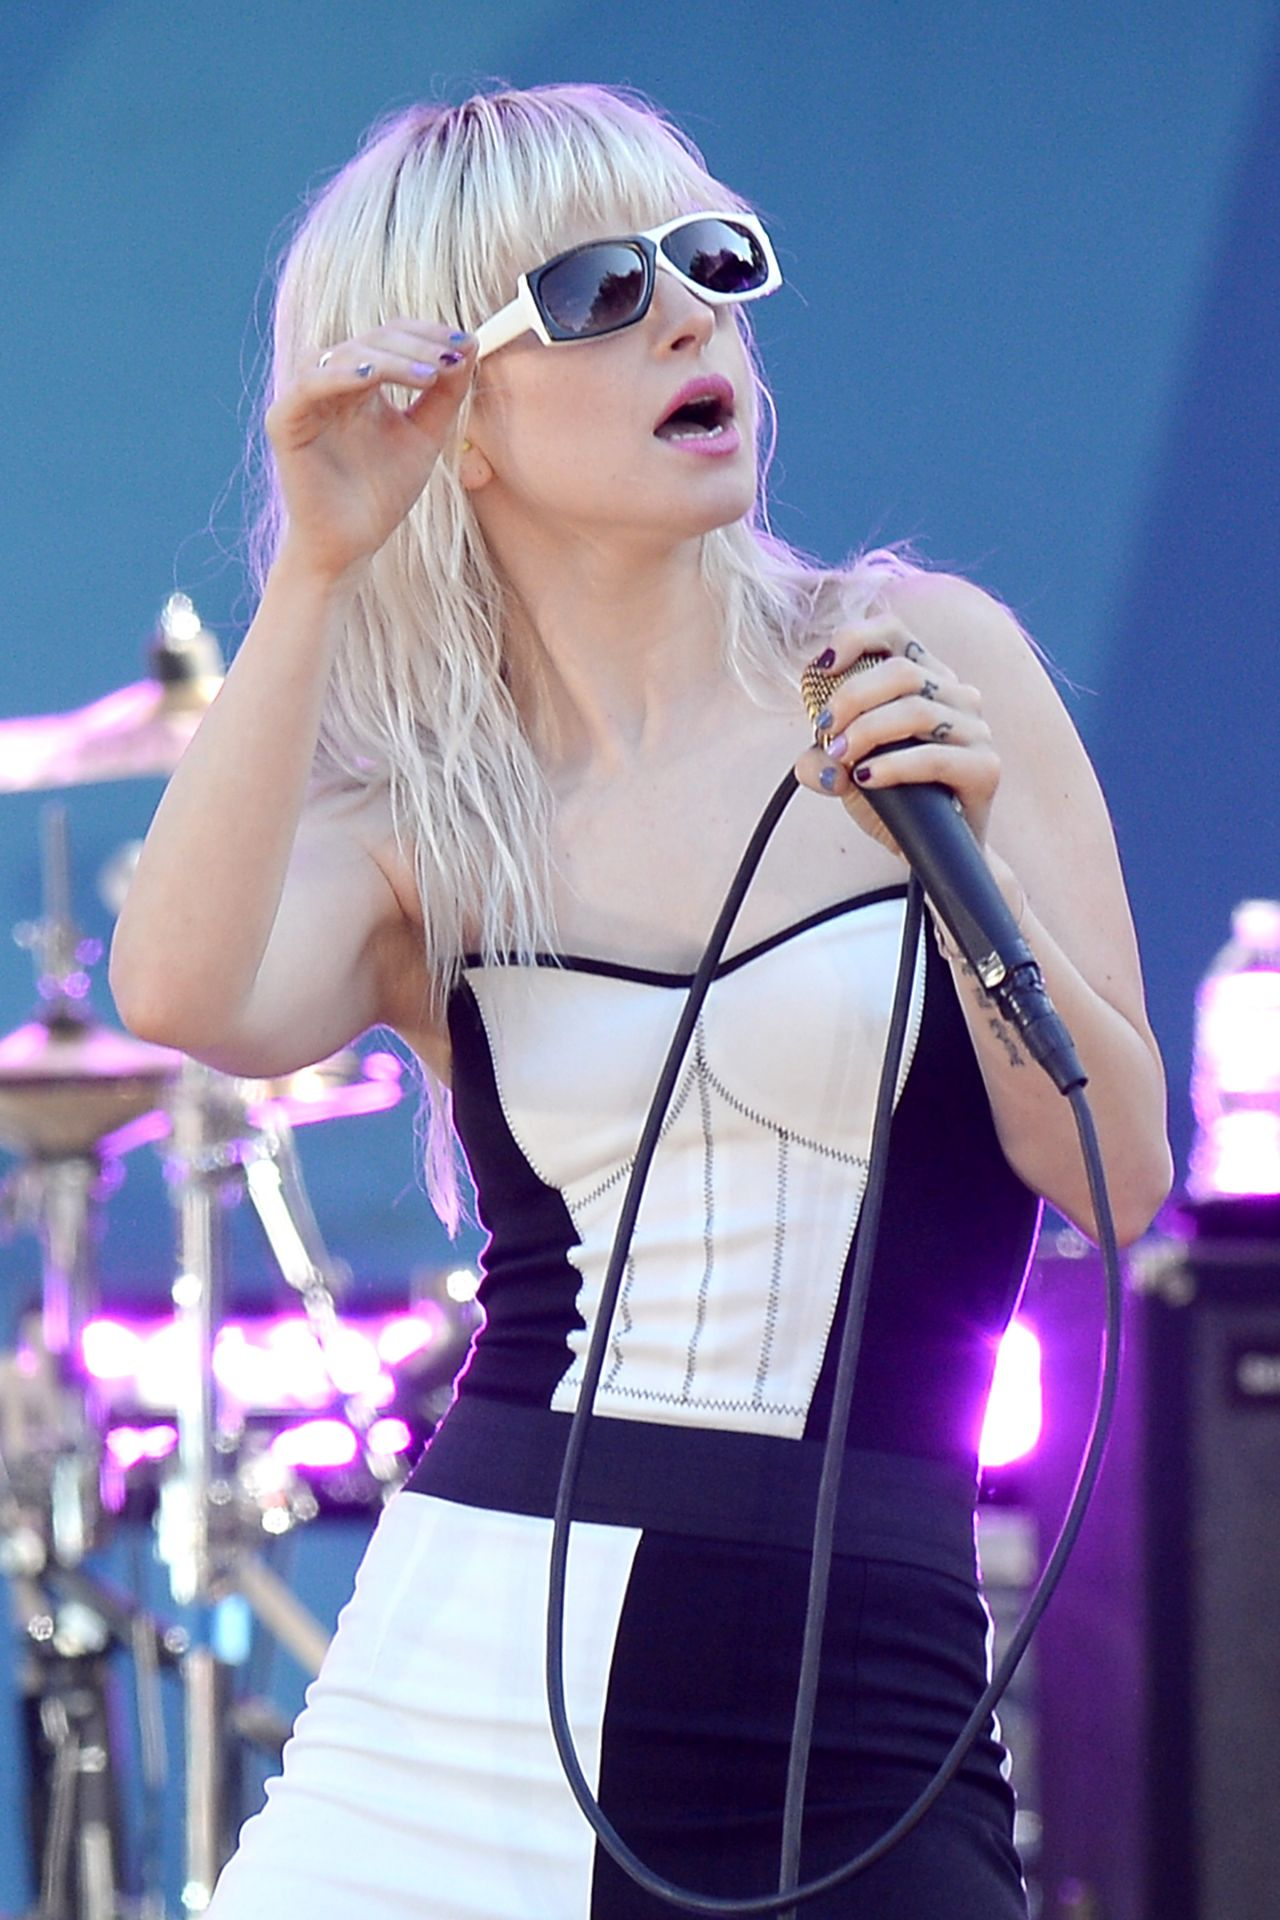 hayley williams performs live on good morning americas